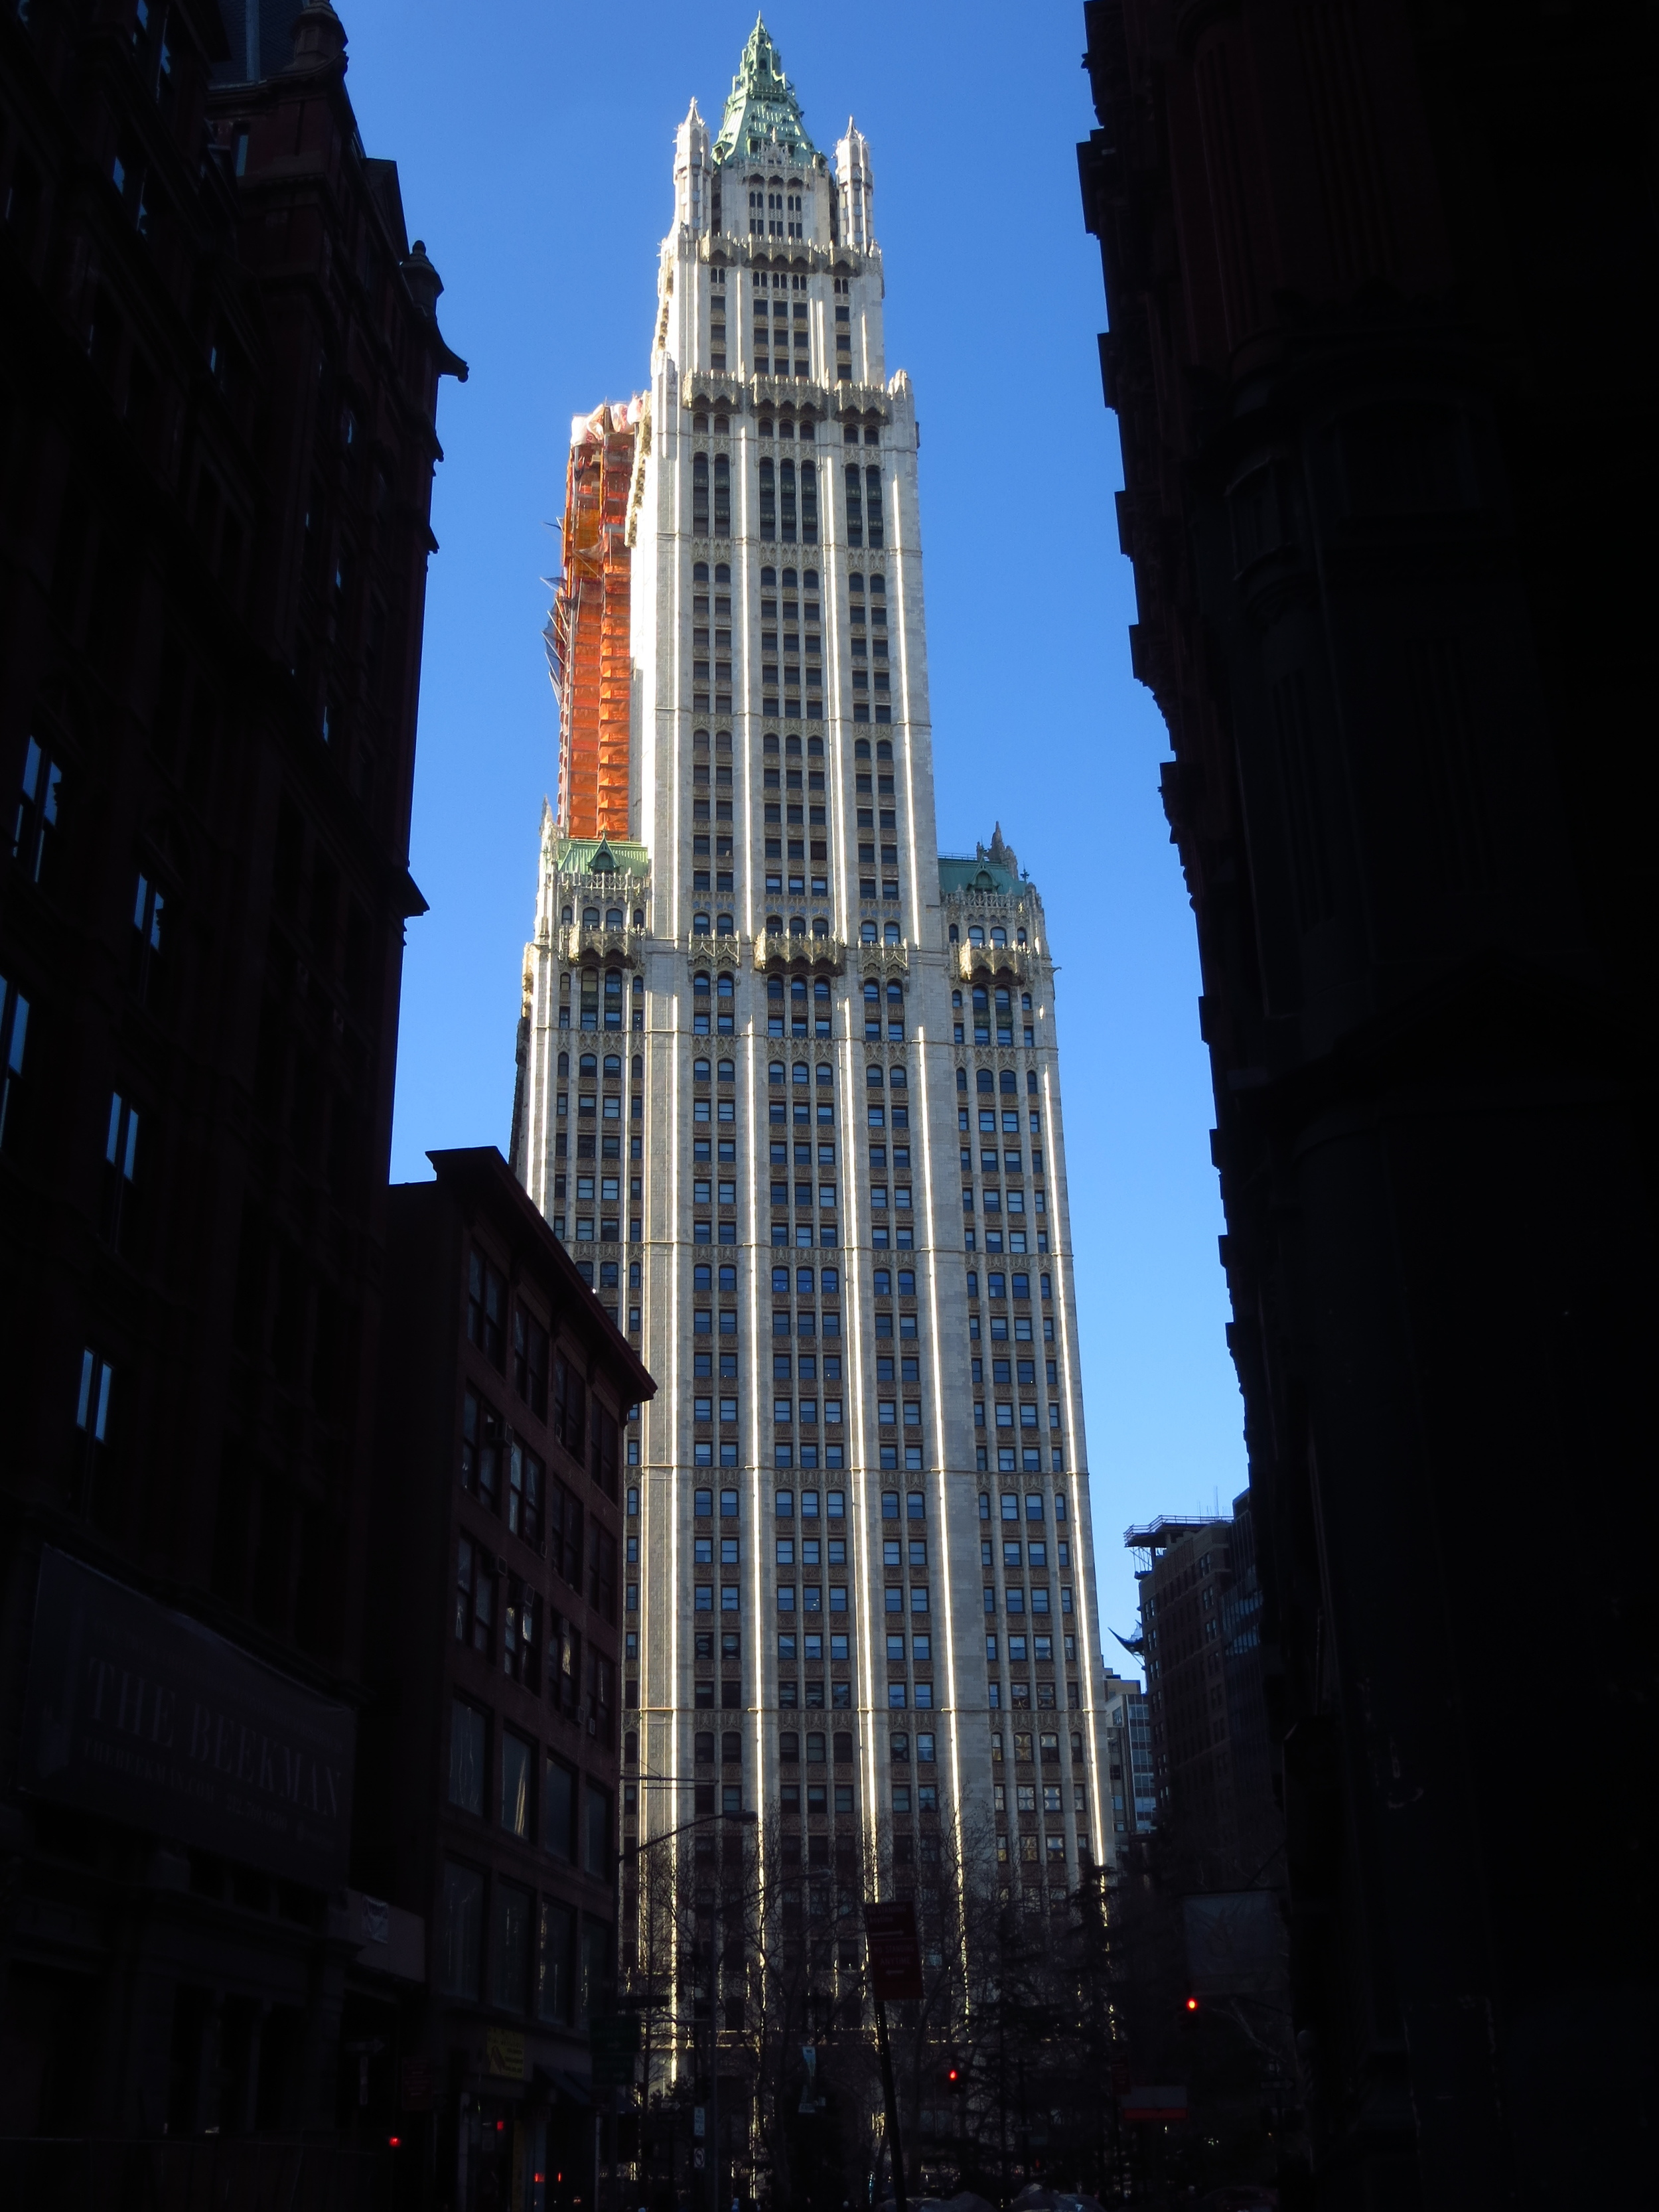 Woolworth Building; World's tallest building from 1913 - 1930